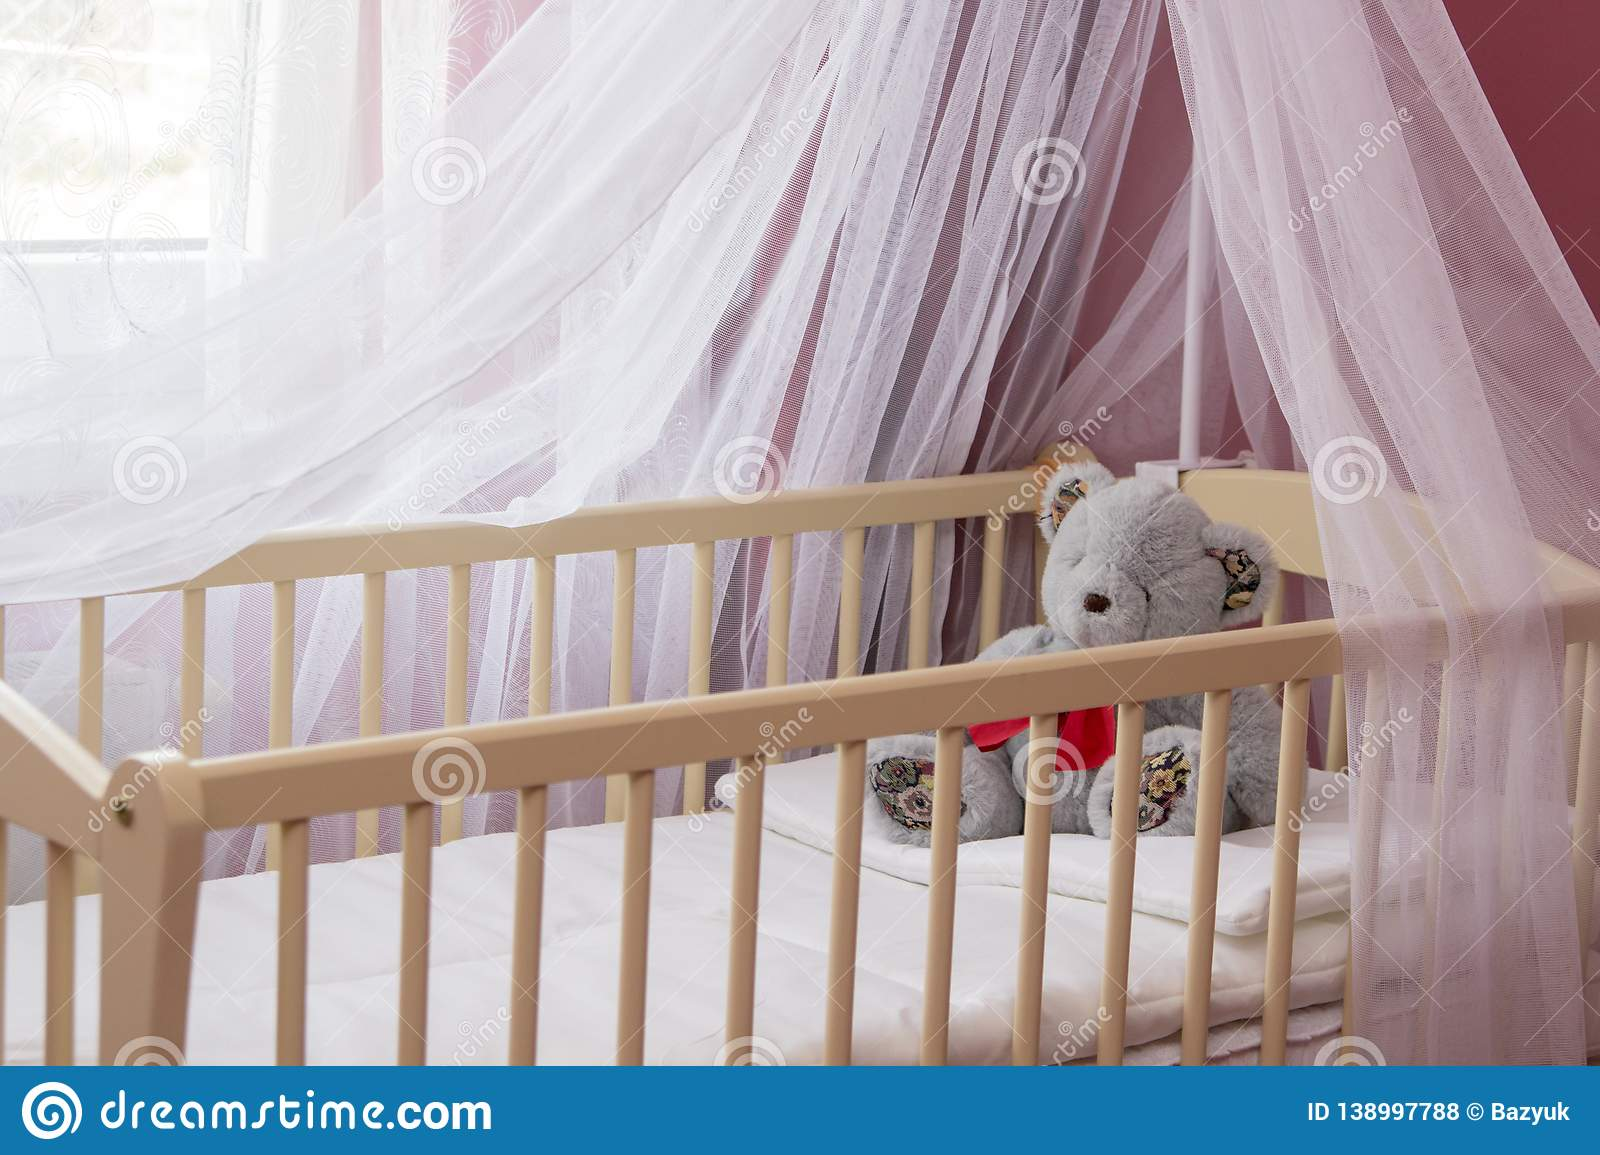 Baby cot baby bed with canopy & Baby Bed With Canopybedroom For The Baby Cradle With A Canopy ...